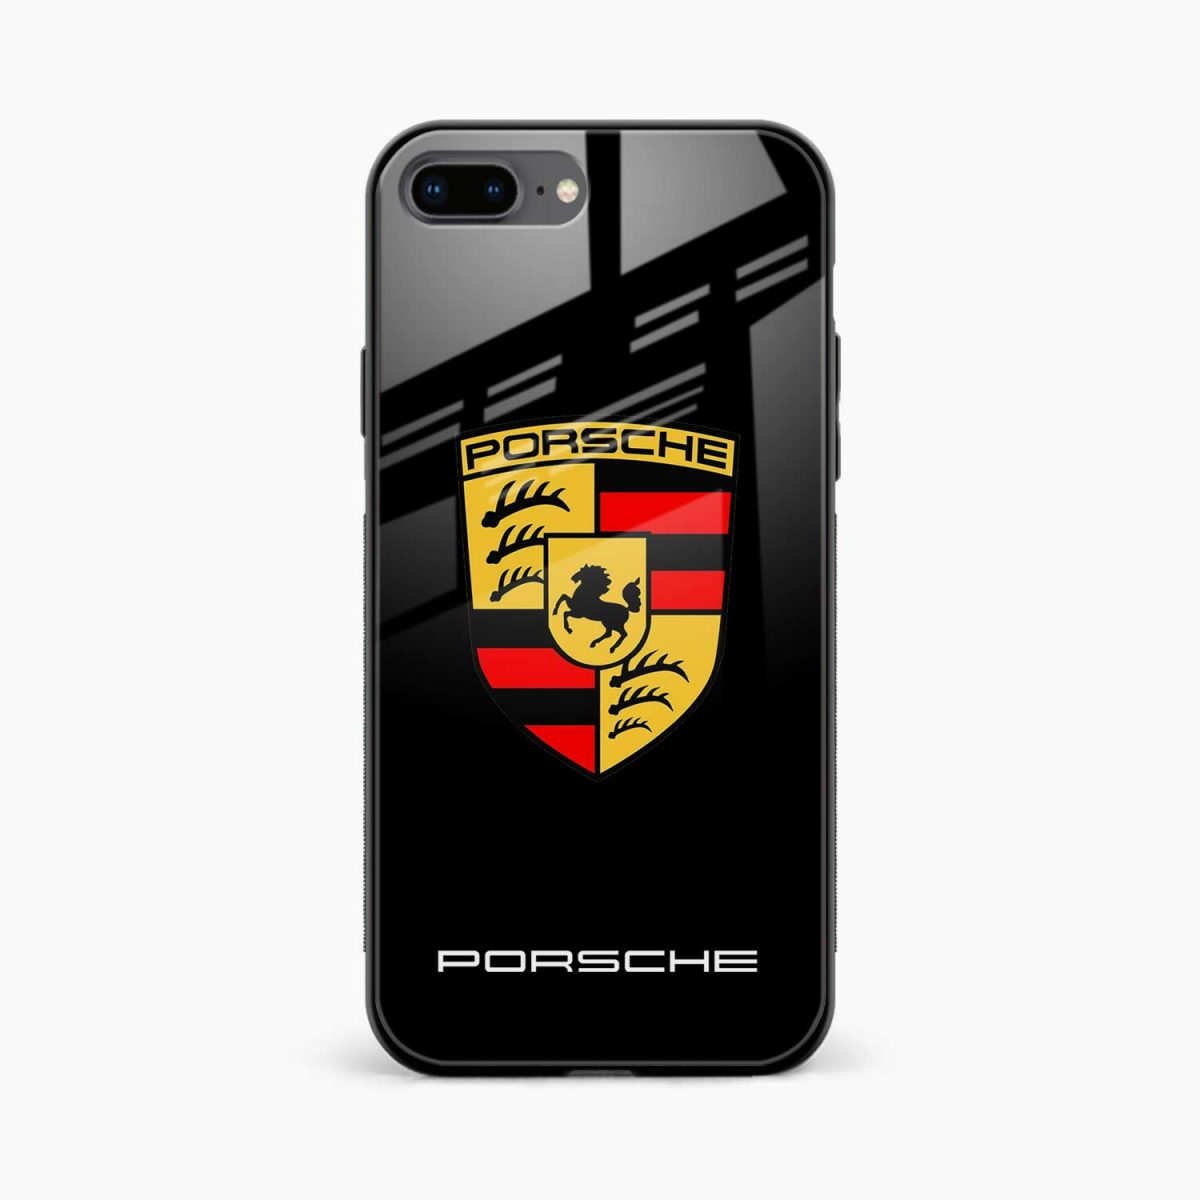 prosche front view apple iphone 7 8 plus back cover